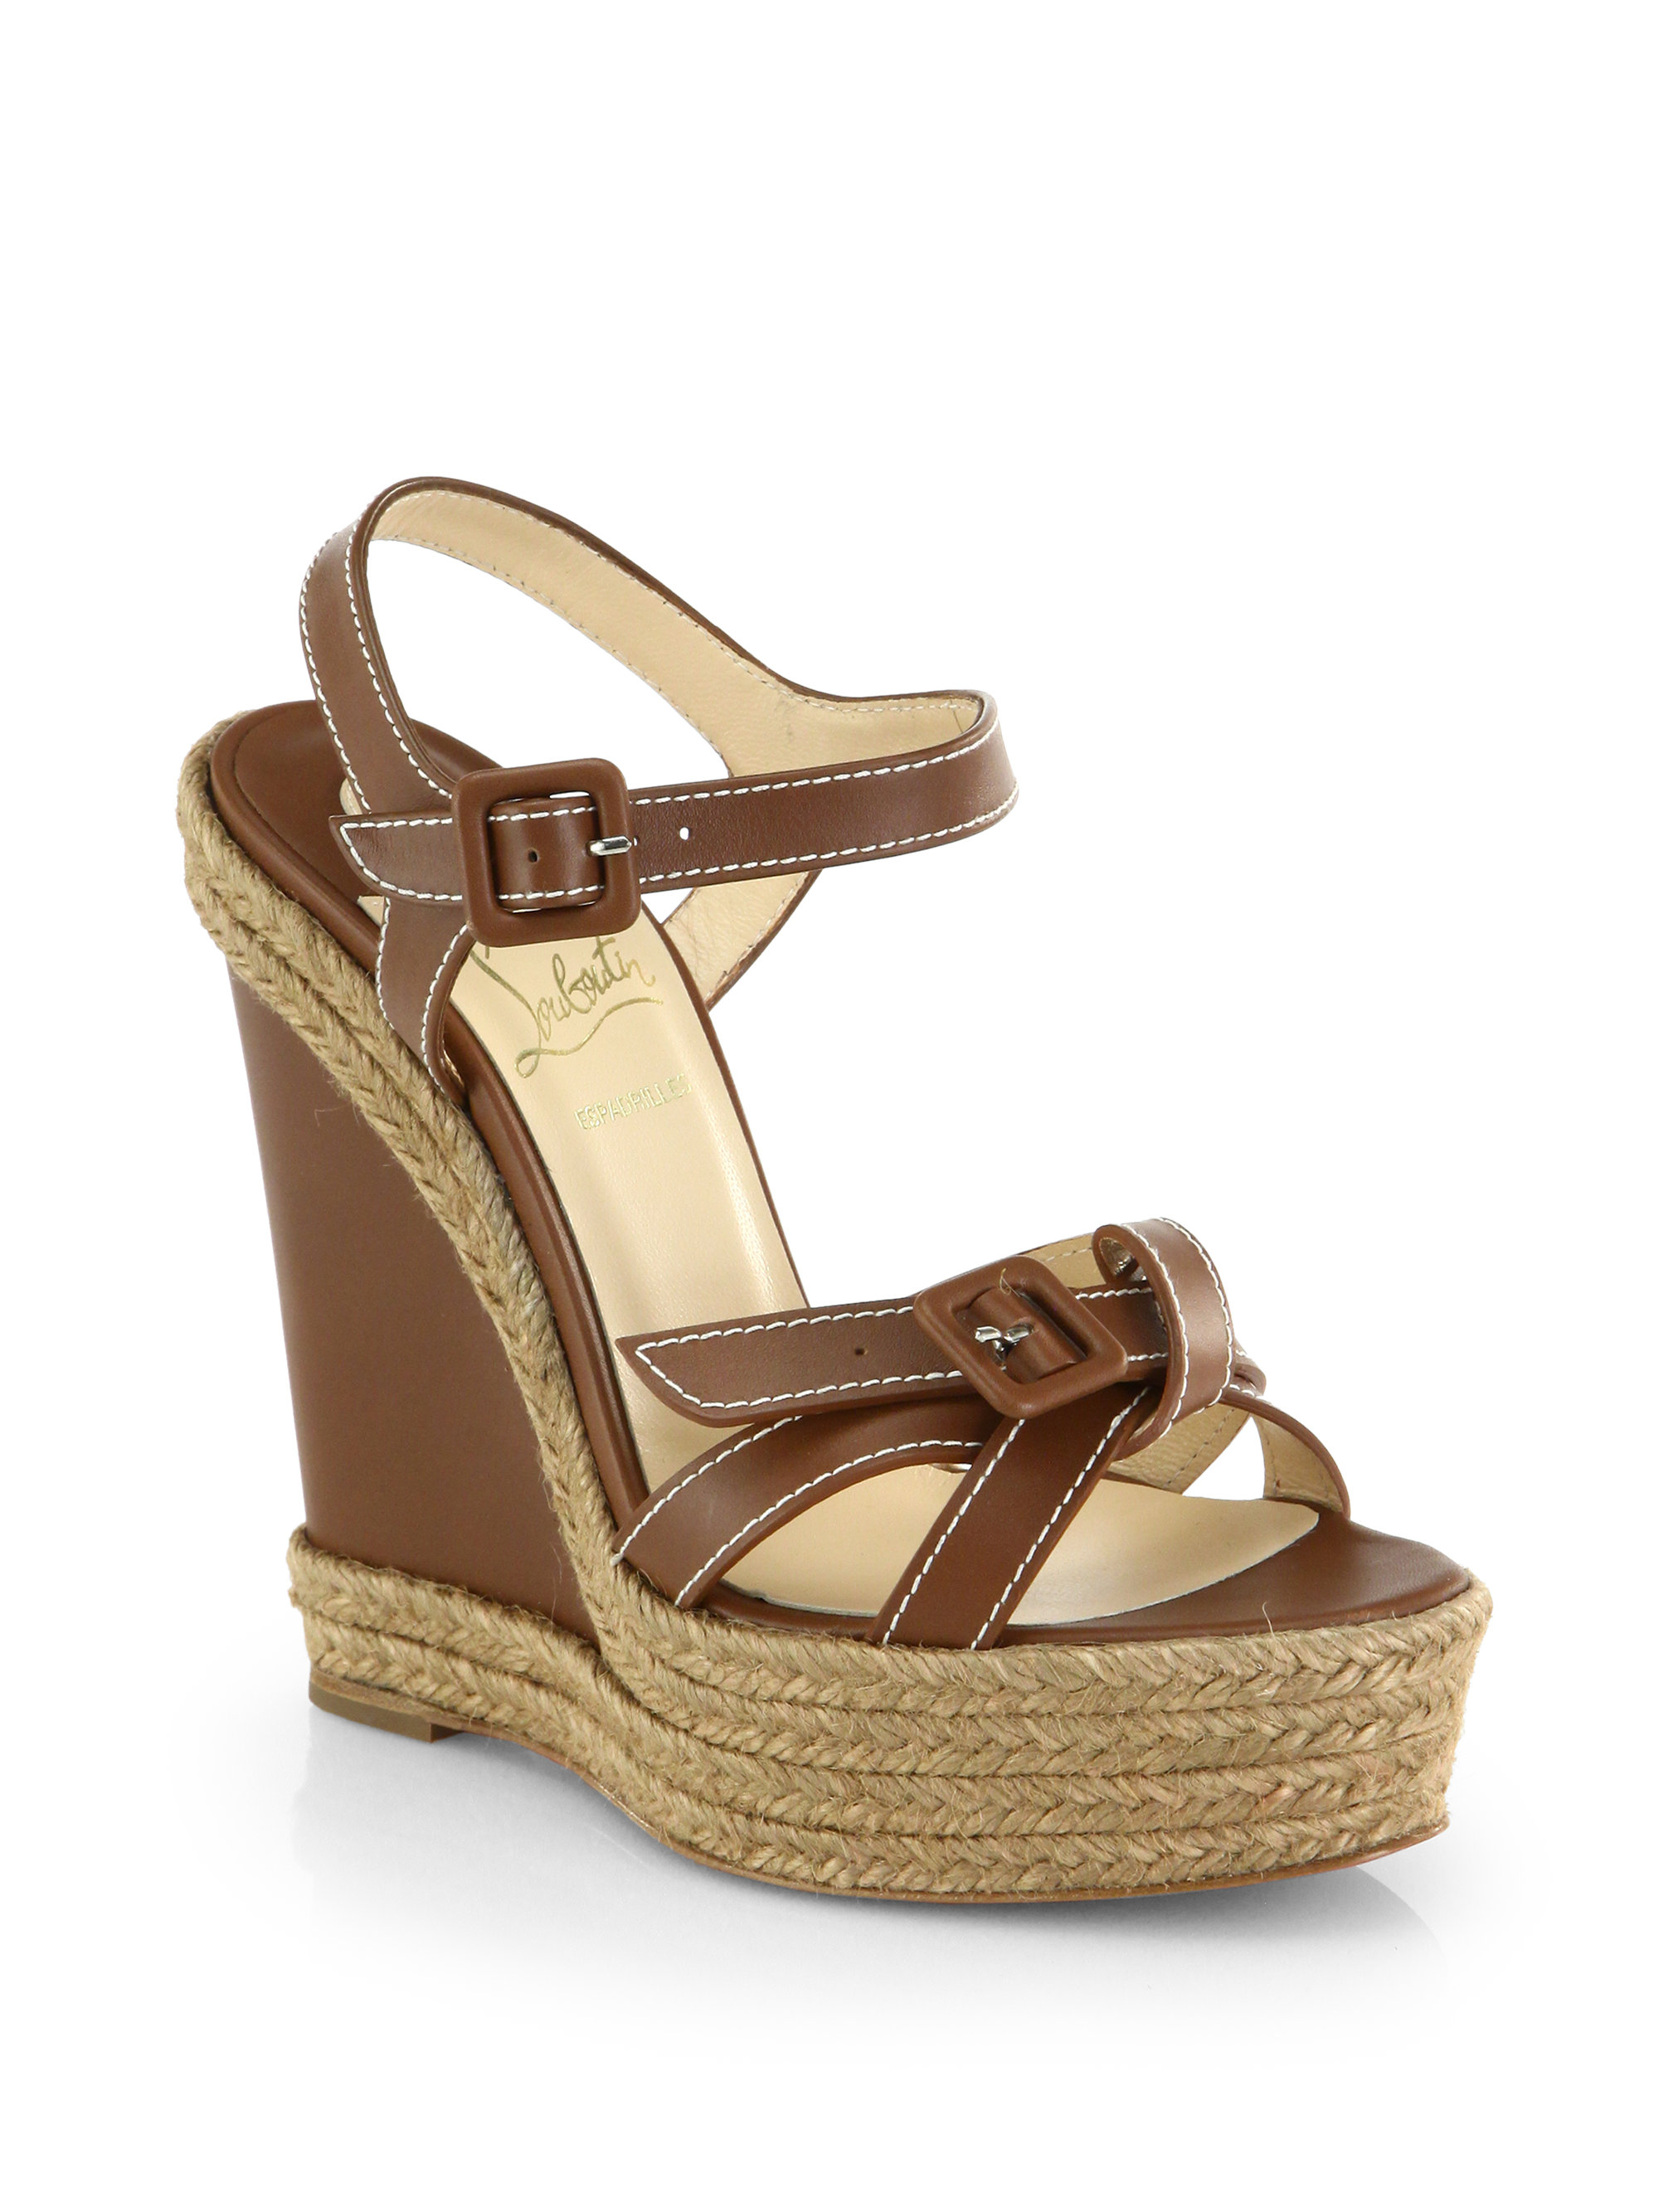 ebec092e7053 Christian Louboutin Zero Problem Leather Espadrille Wedge Sandals in ...